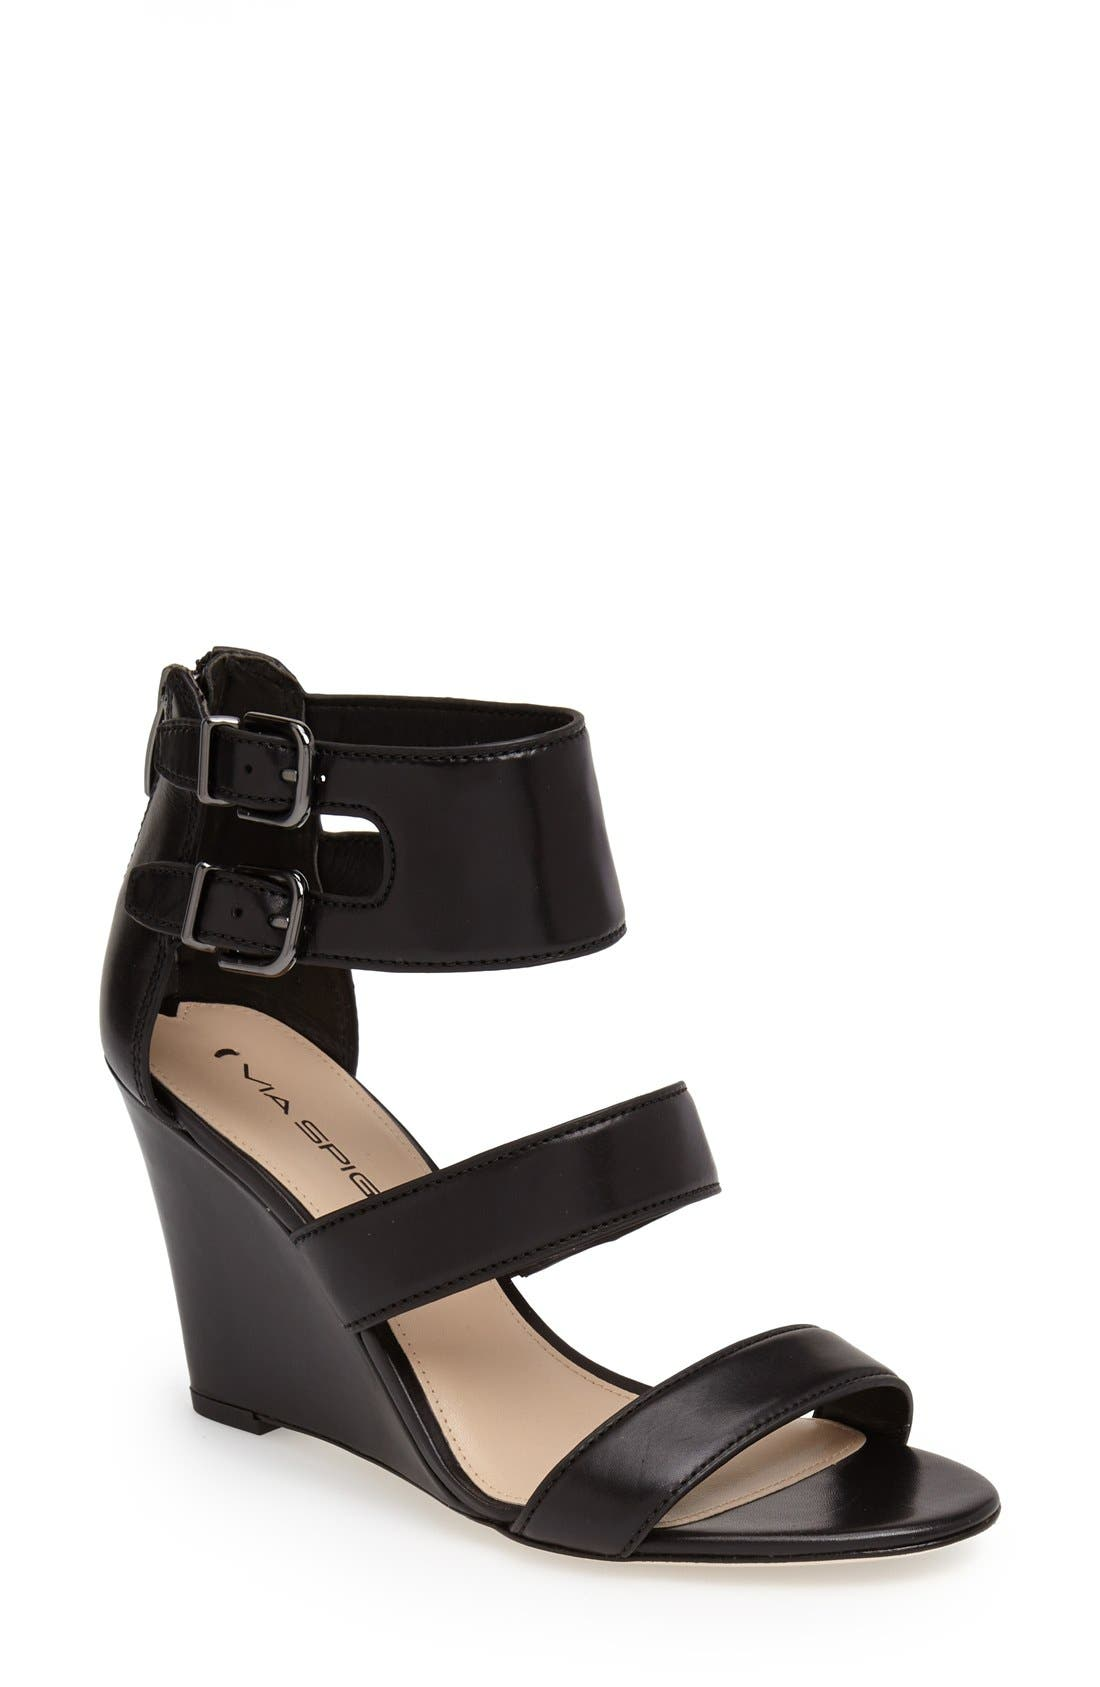 Main Image - Via Spiga 'Fernanda' Wedge Leather Sandal (Women)